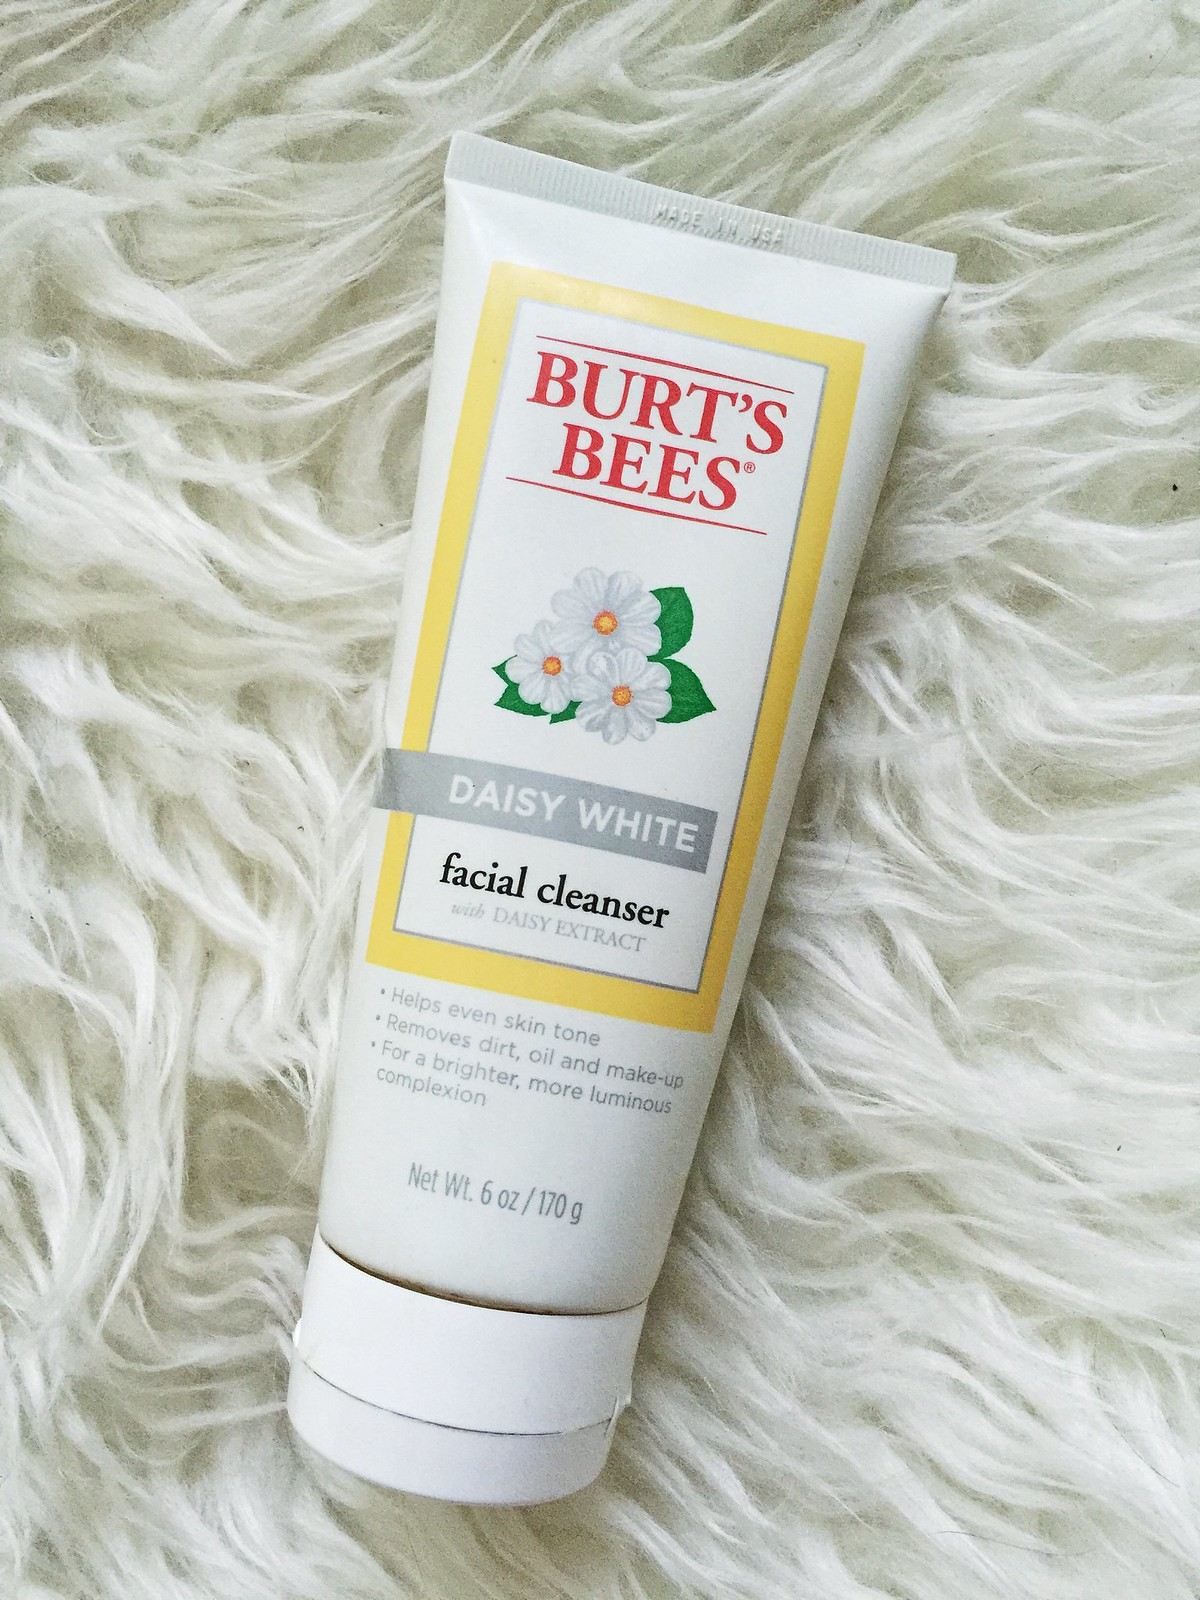 burts-bees-daisy-white-facial-cleanser